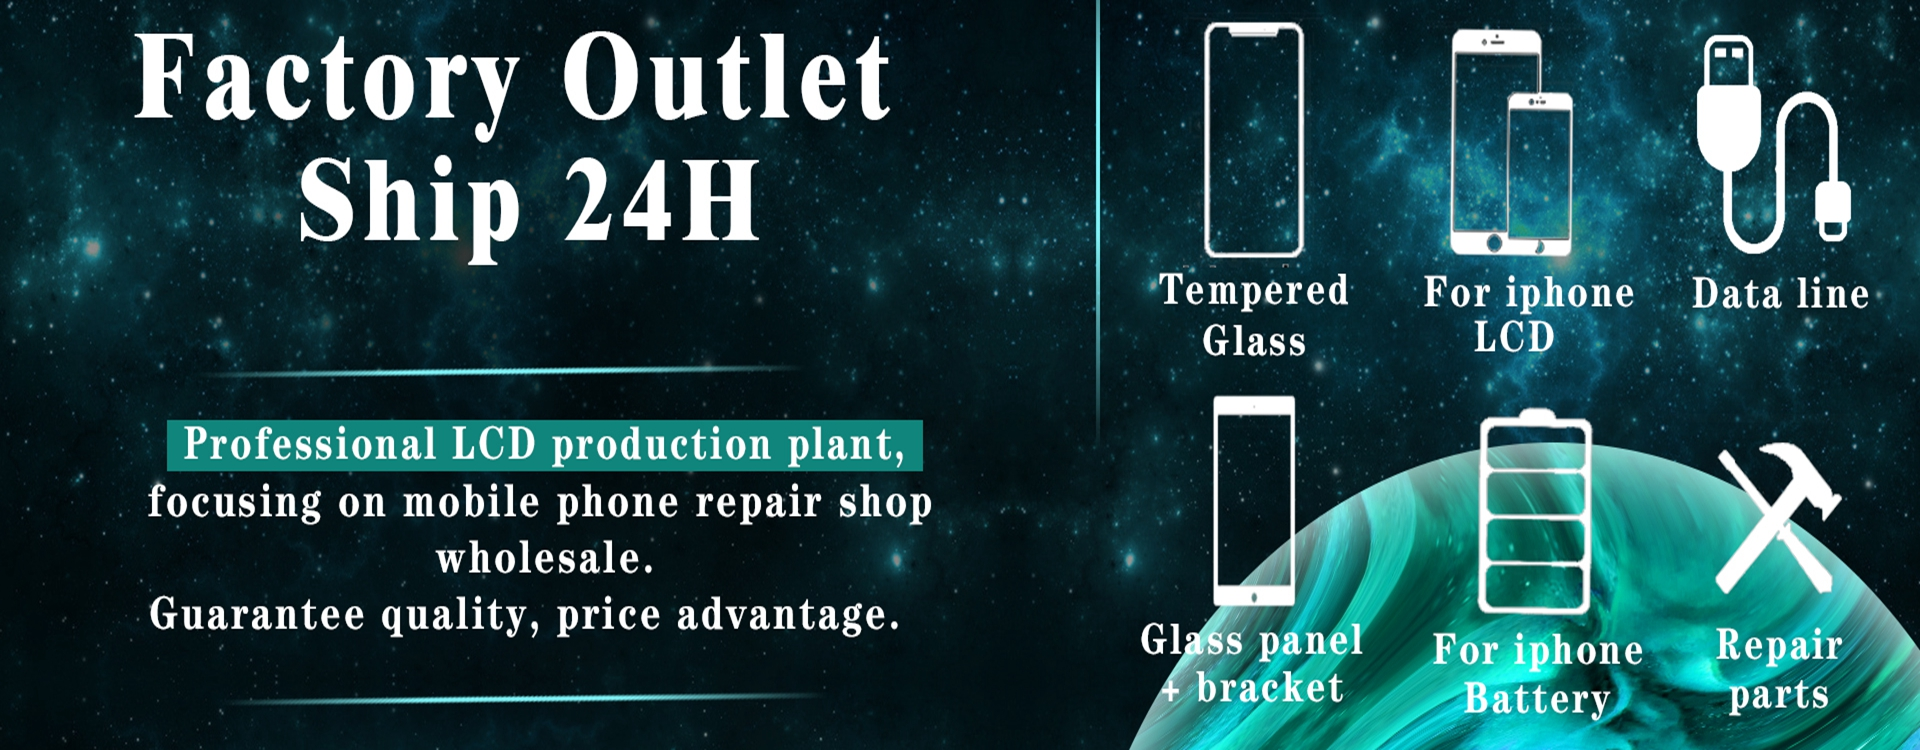 H6c5e42a73b7747a59441deb110b71e75p AAA LCD Display 100%3D Touch Screen For iPhone 6S 7 8 6G Replacement Screen With Digitizer Assembly For iPhone Repair Tools Gift